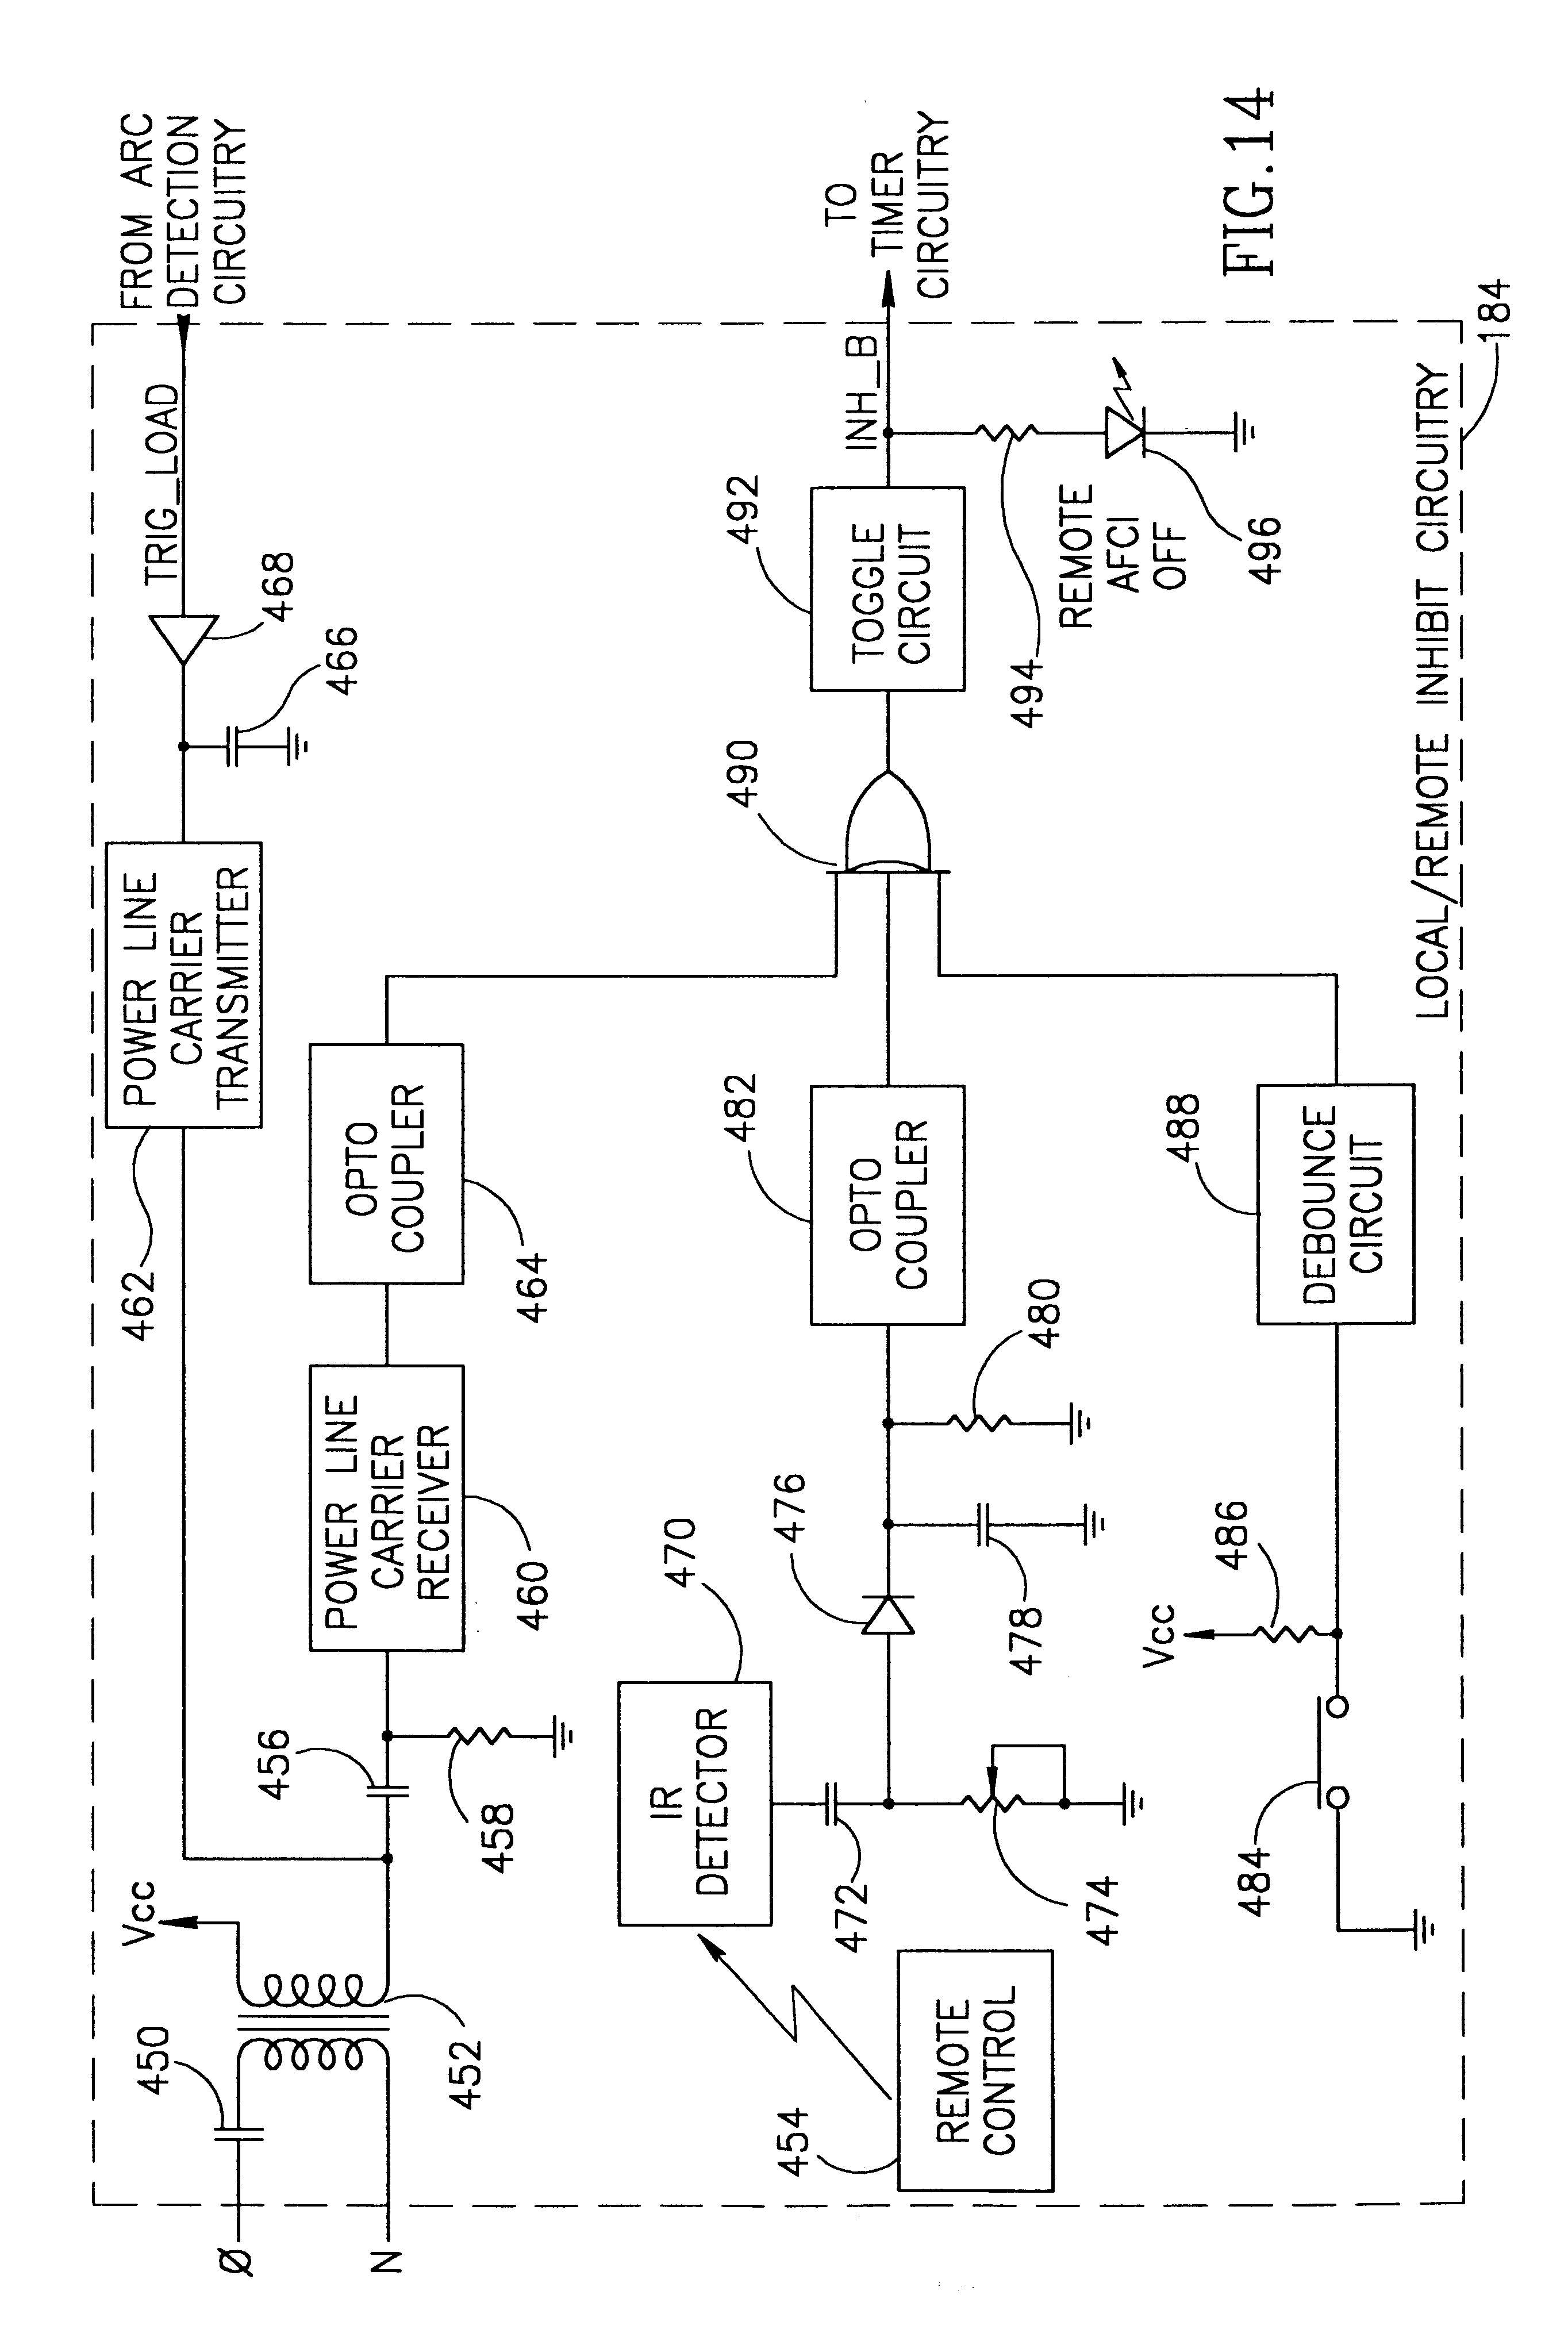 related with gfci line load wiring diagram